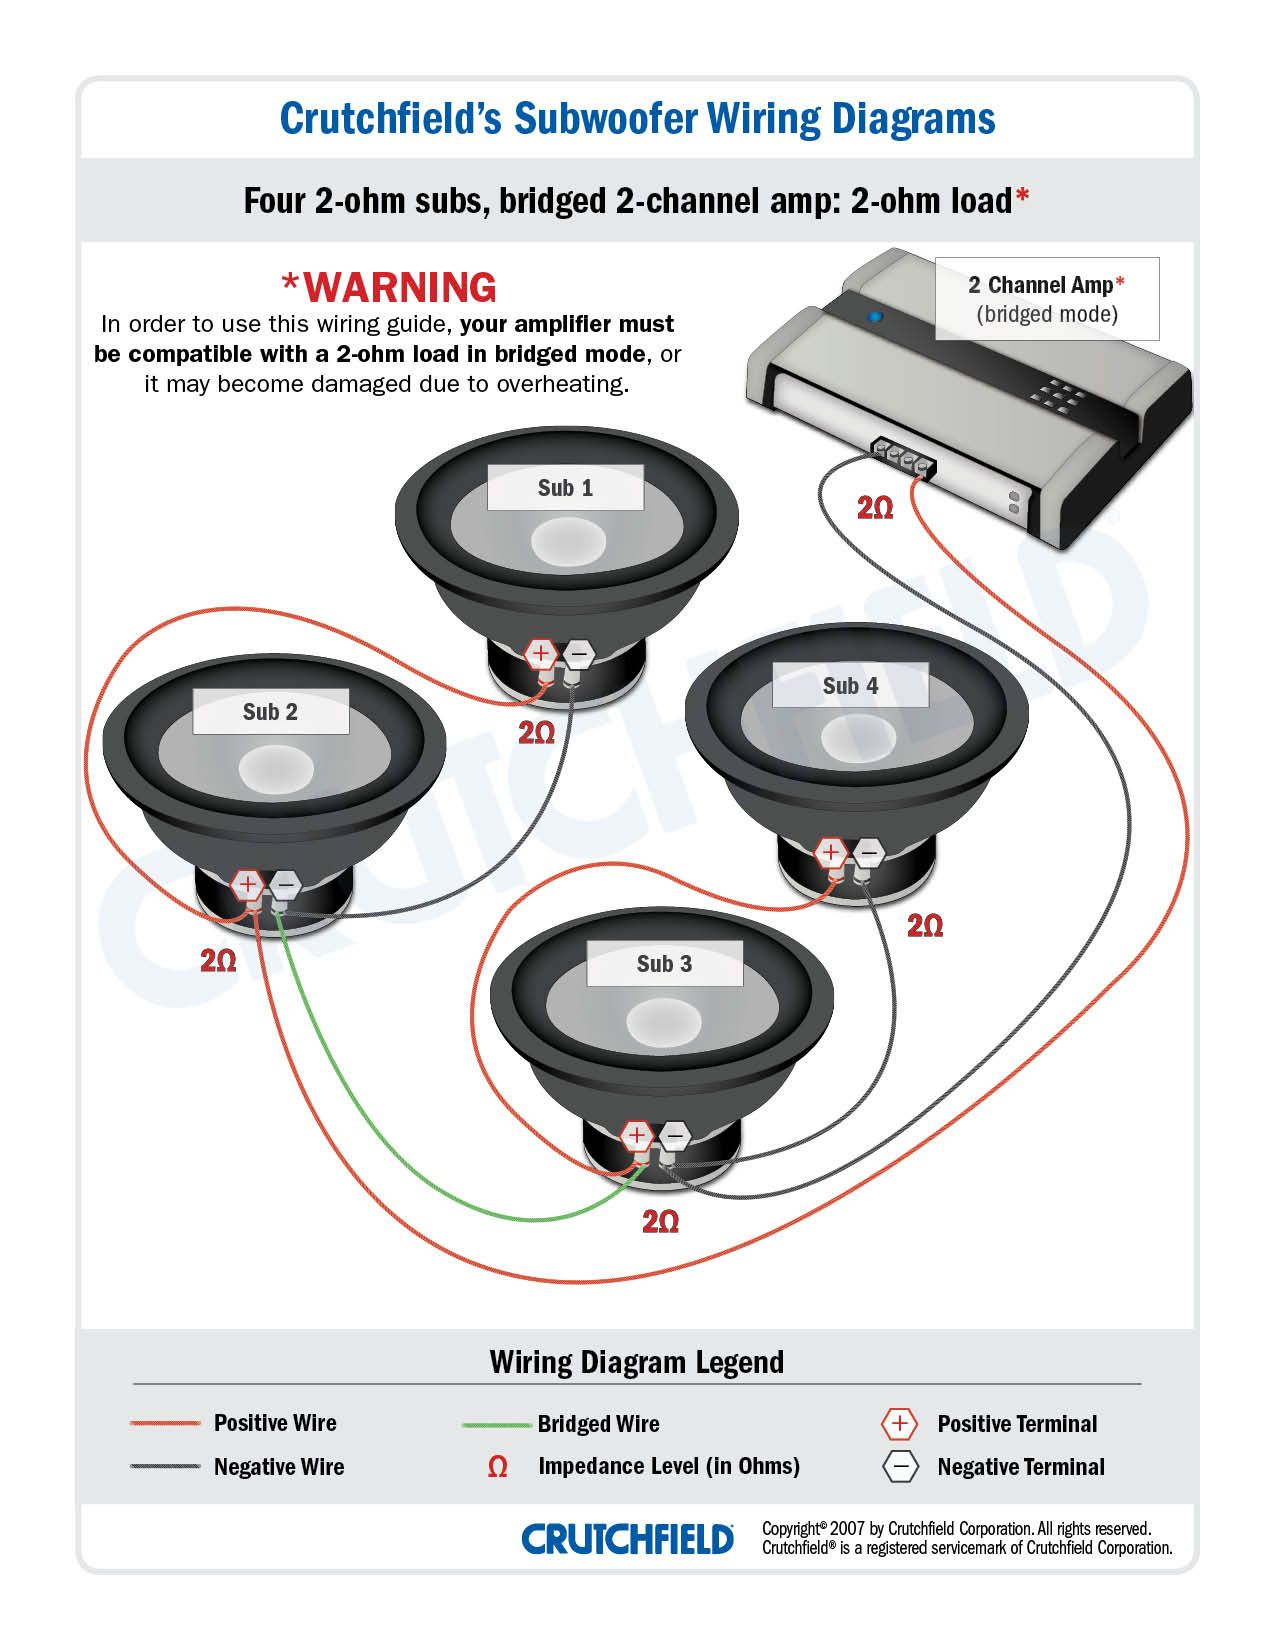 top 10 subwoofer wiring diagram free download 4 svc 2 ohm 2 ch low rh pinterest com 4 ohm subwoofer wiring diagram home subwoofer wiring diagrams [ 1275 x 1650 Pixel ]